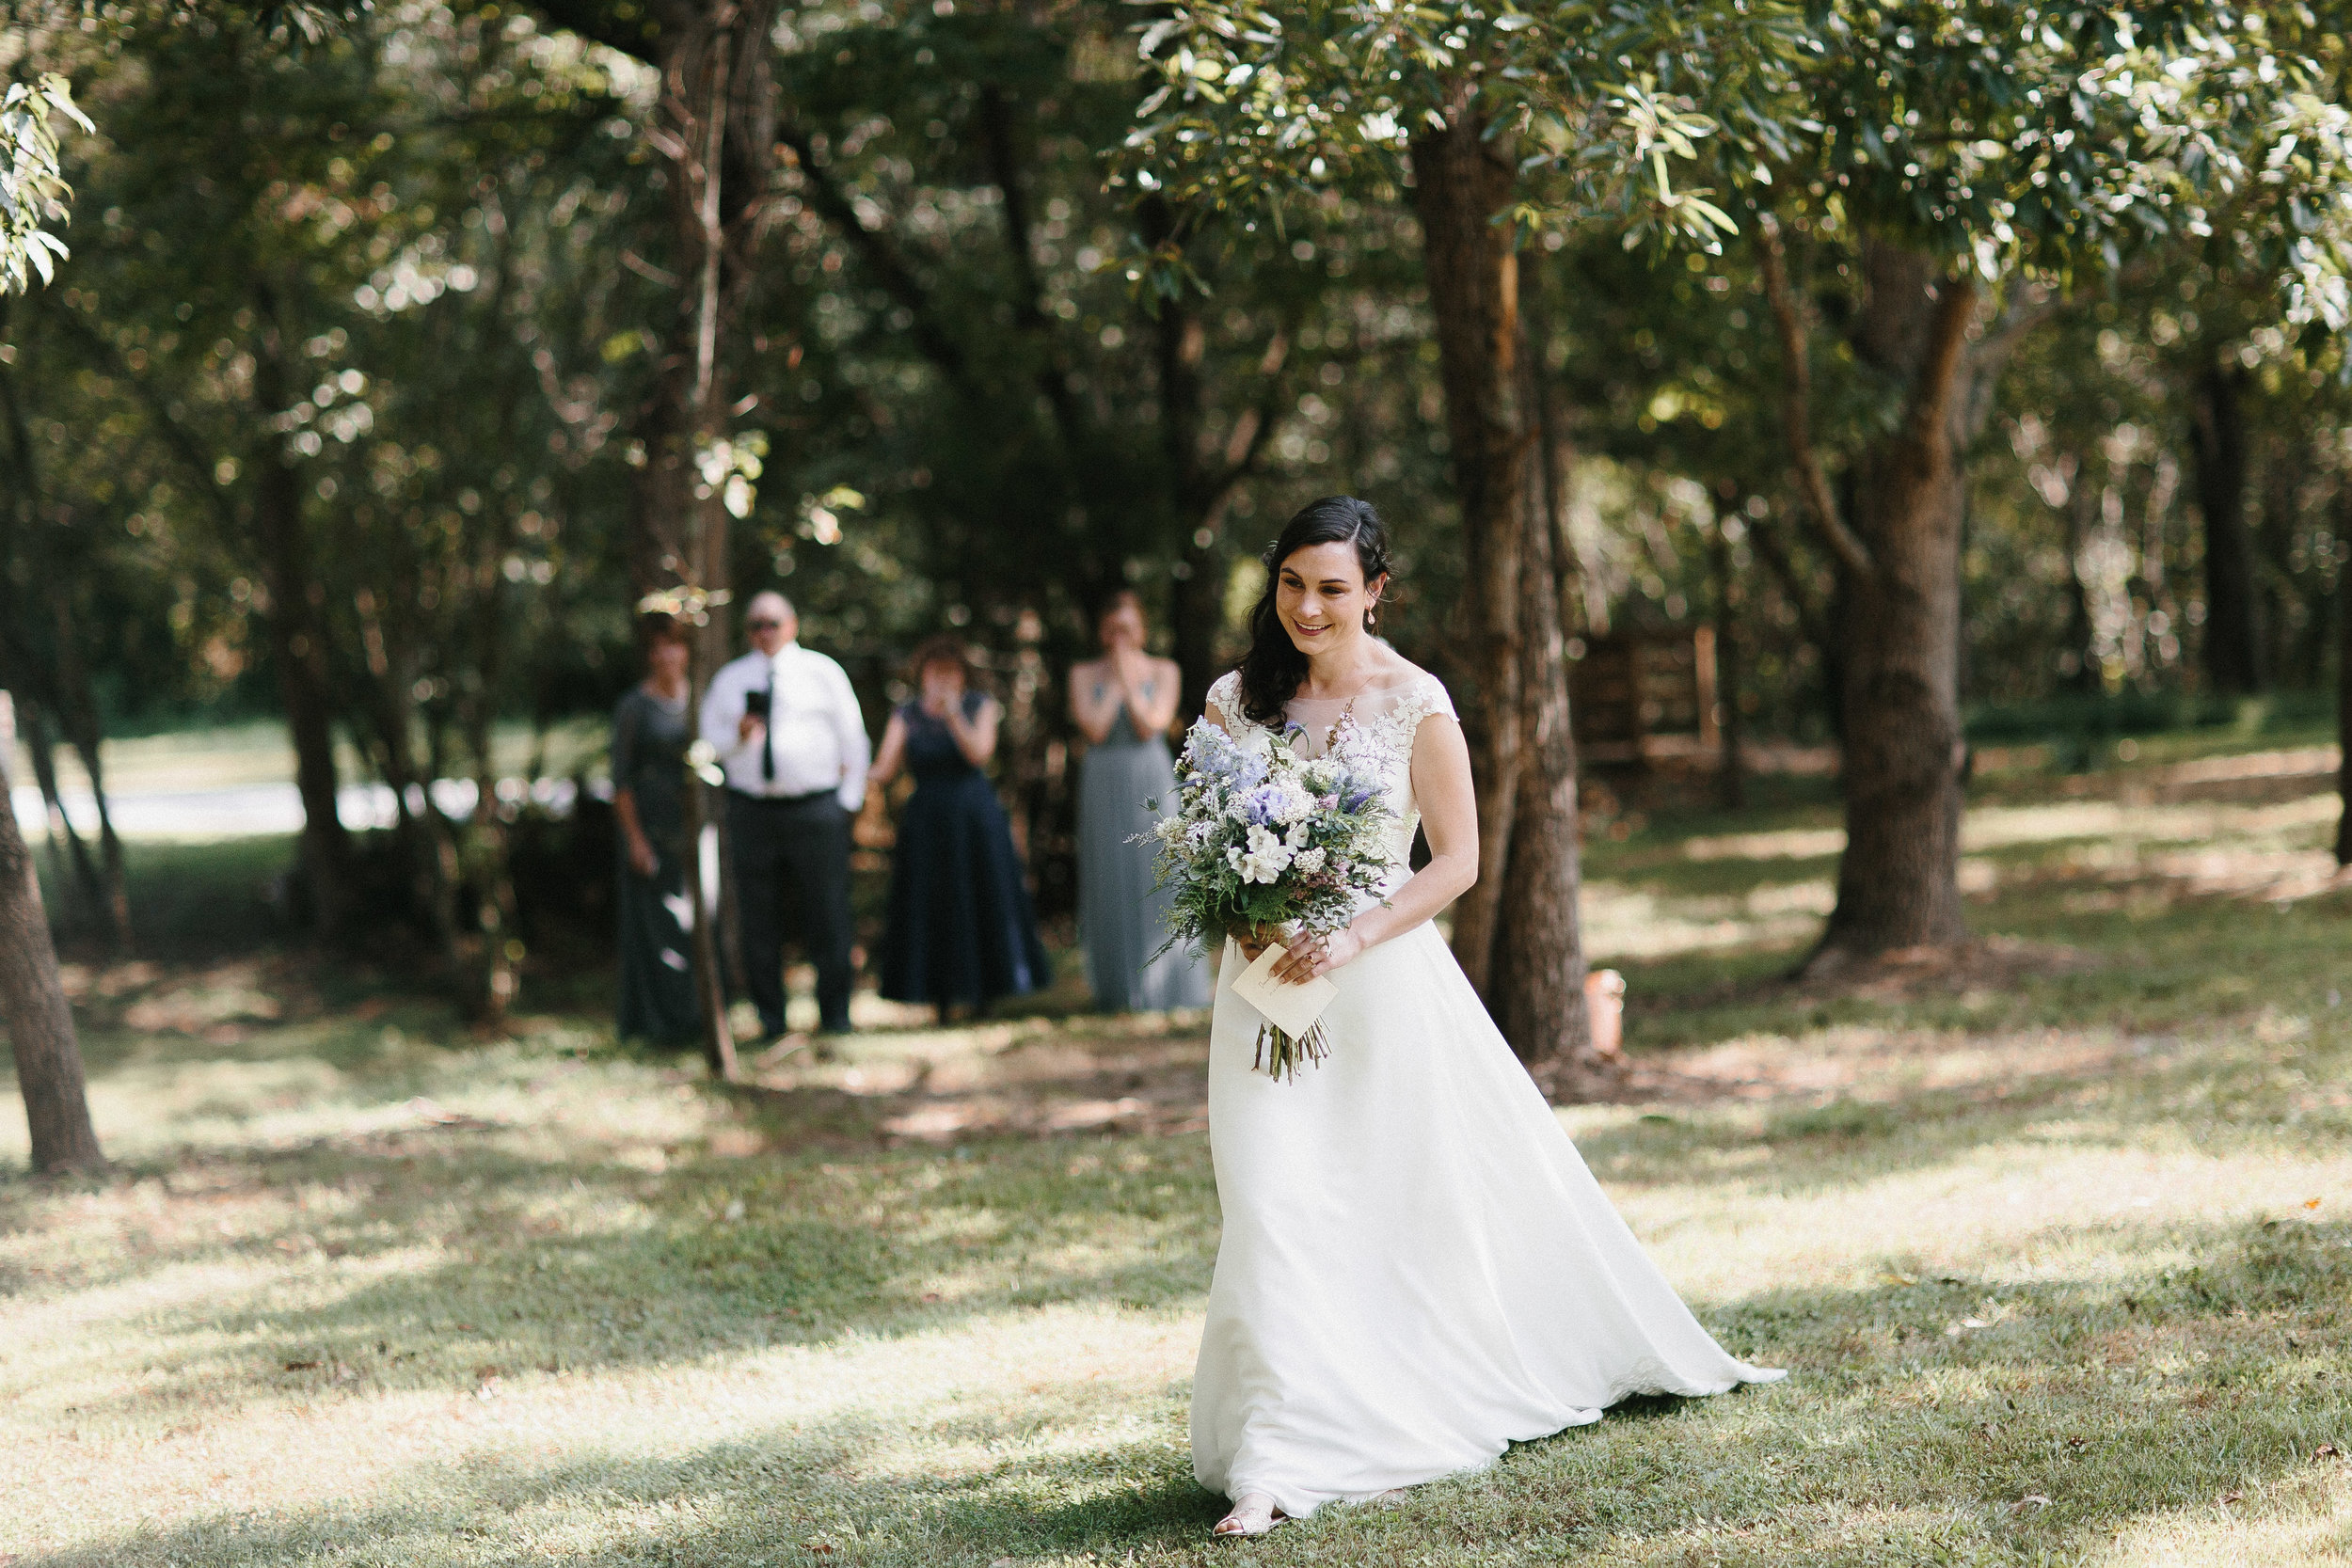 cleveland_georgia_mountain_laurel_farm_natural_classic_timeless_documentary_candid_wedding_emotional_photojournalism_river_west_1232.jpg